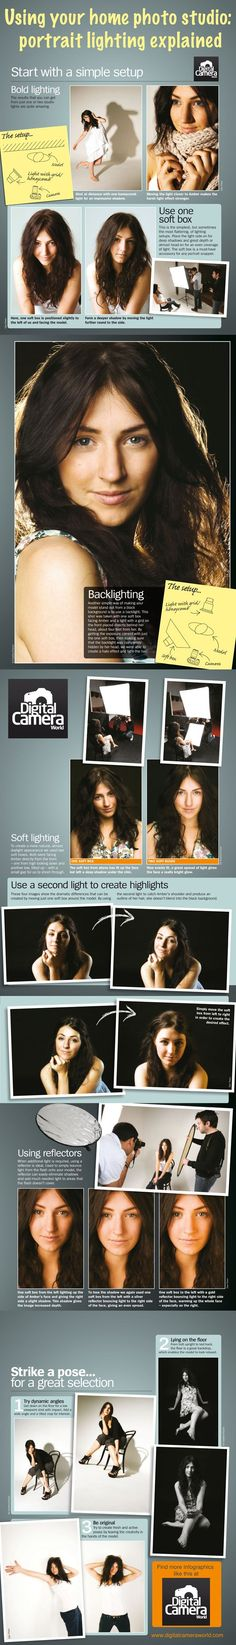 Portrait lighting cheat sheet - examples of different lighting options and their effects.